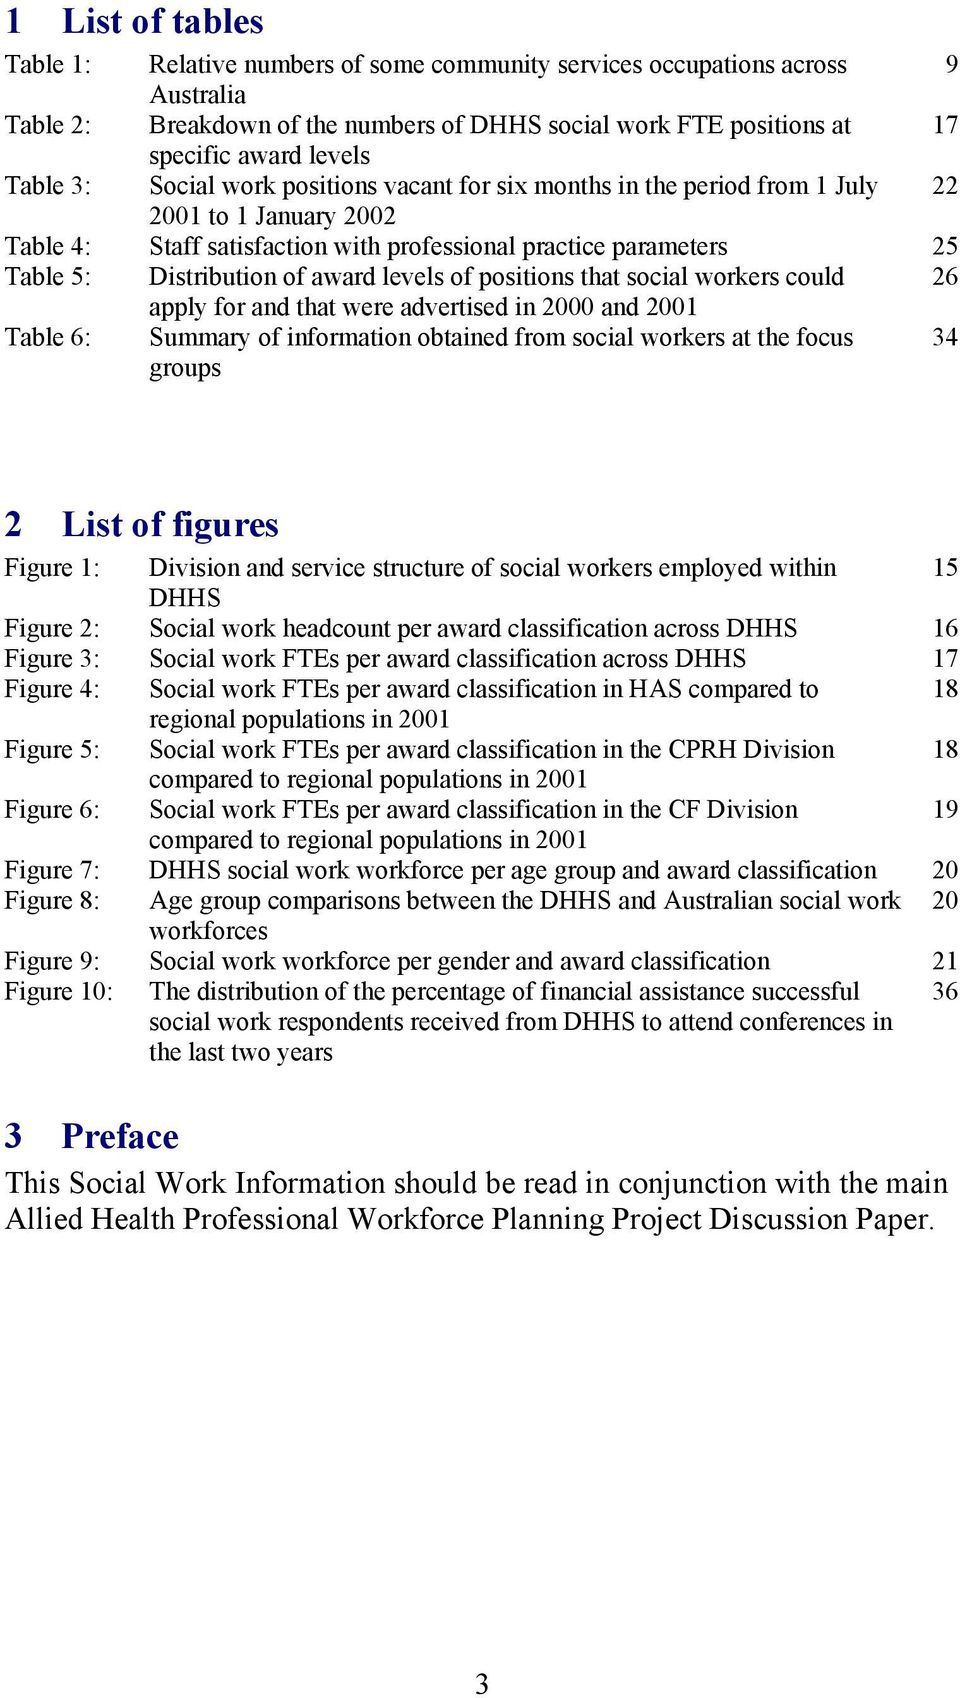 award levels of positions that social workers could 26 apply for and that were advertised in 2000 and 2001 Table 6: Summary of information obtained from social workers at the focus groups 34 2 List